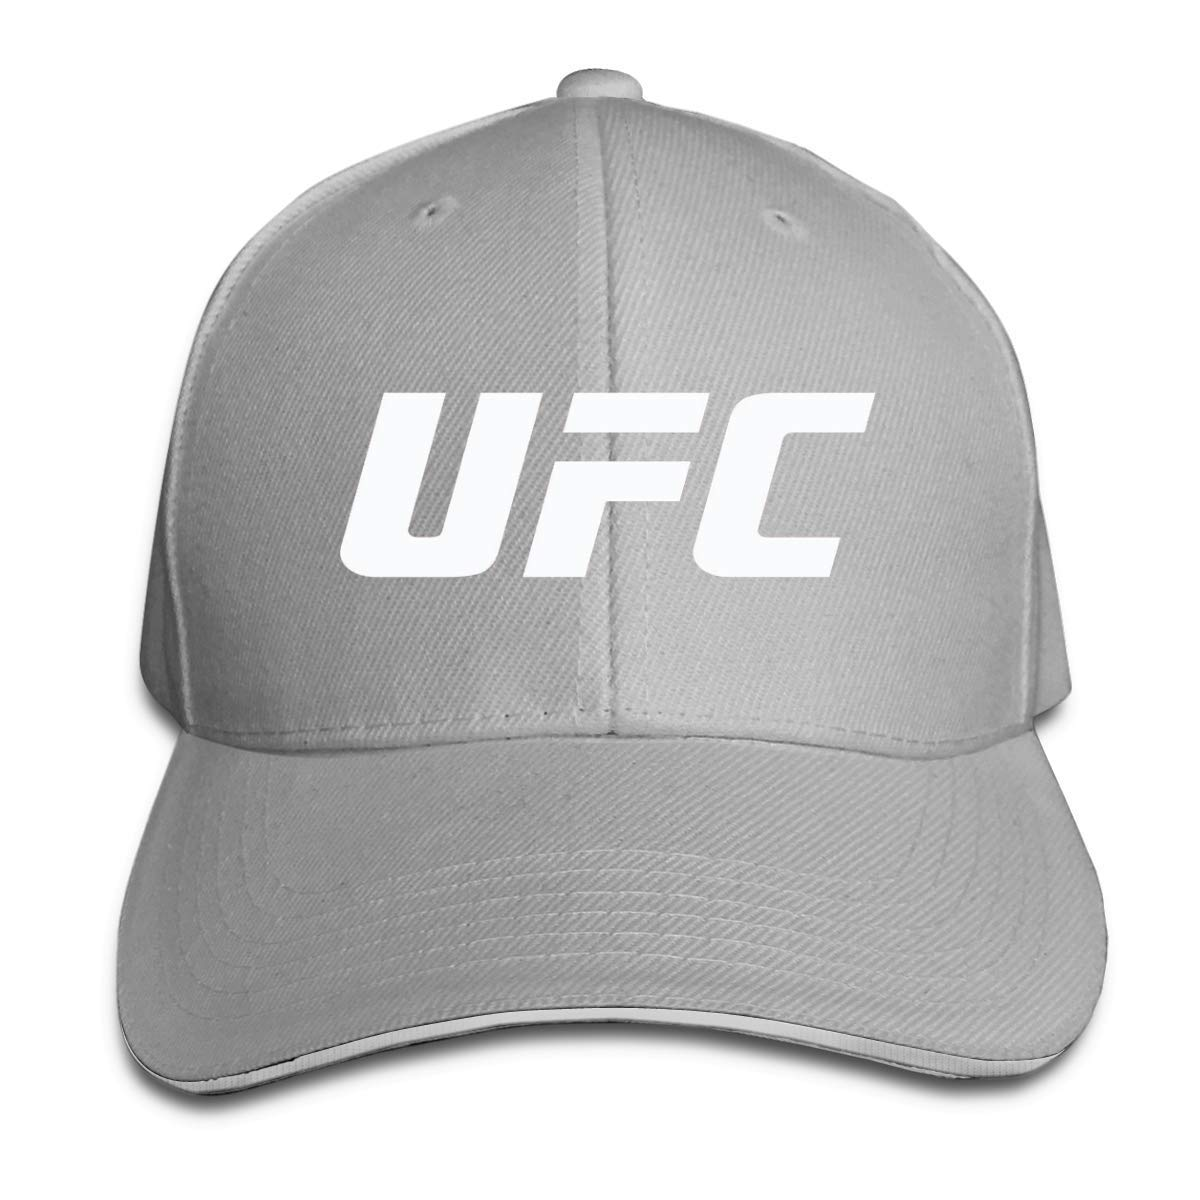 Zhgrong William A Magee7 Unisex UFC Ultimate Fighting Championship ...